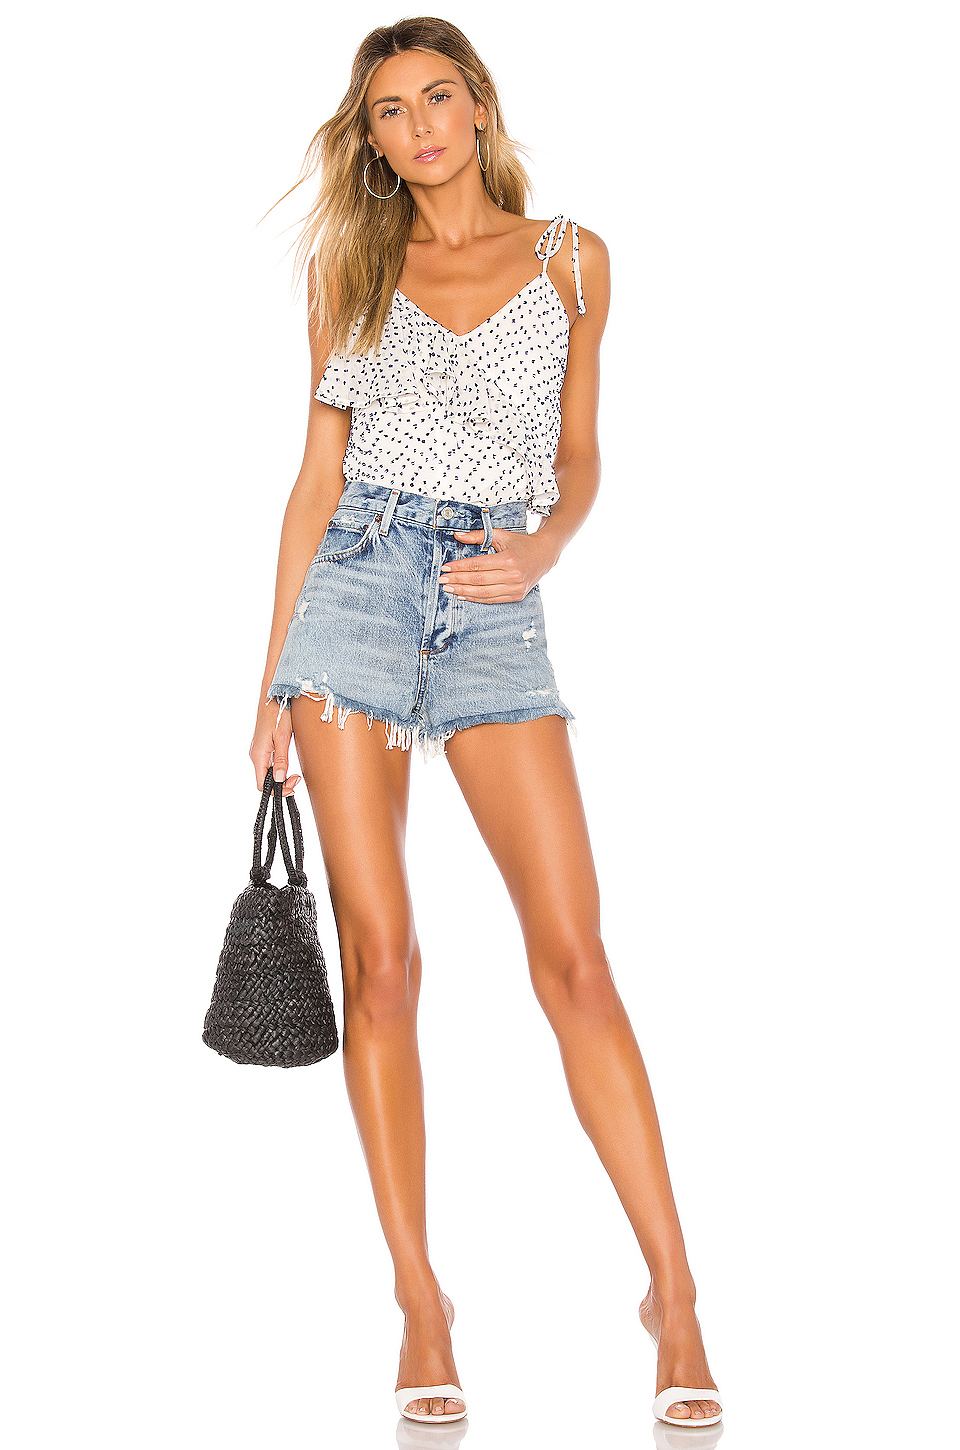 House of Harlow 1960 X REVOLVE Amelie Tank